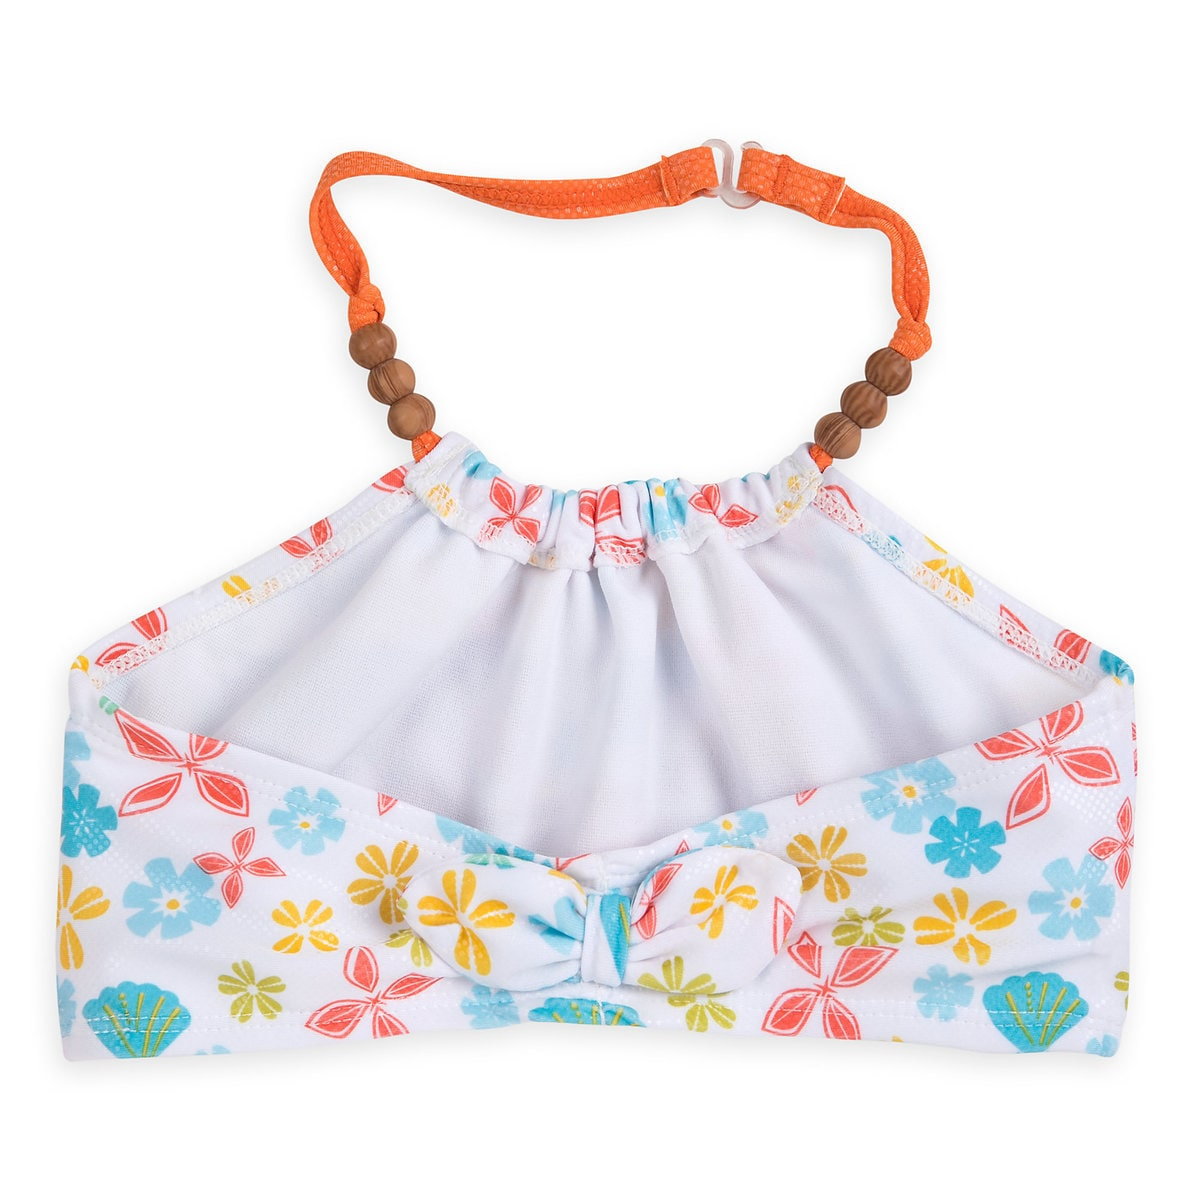 feb3a3392447a Product Image of Moana Two-Piece Swimsuit for Girls # 4